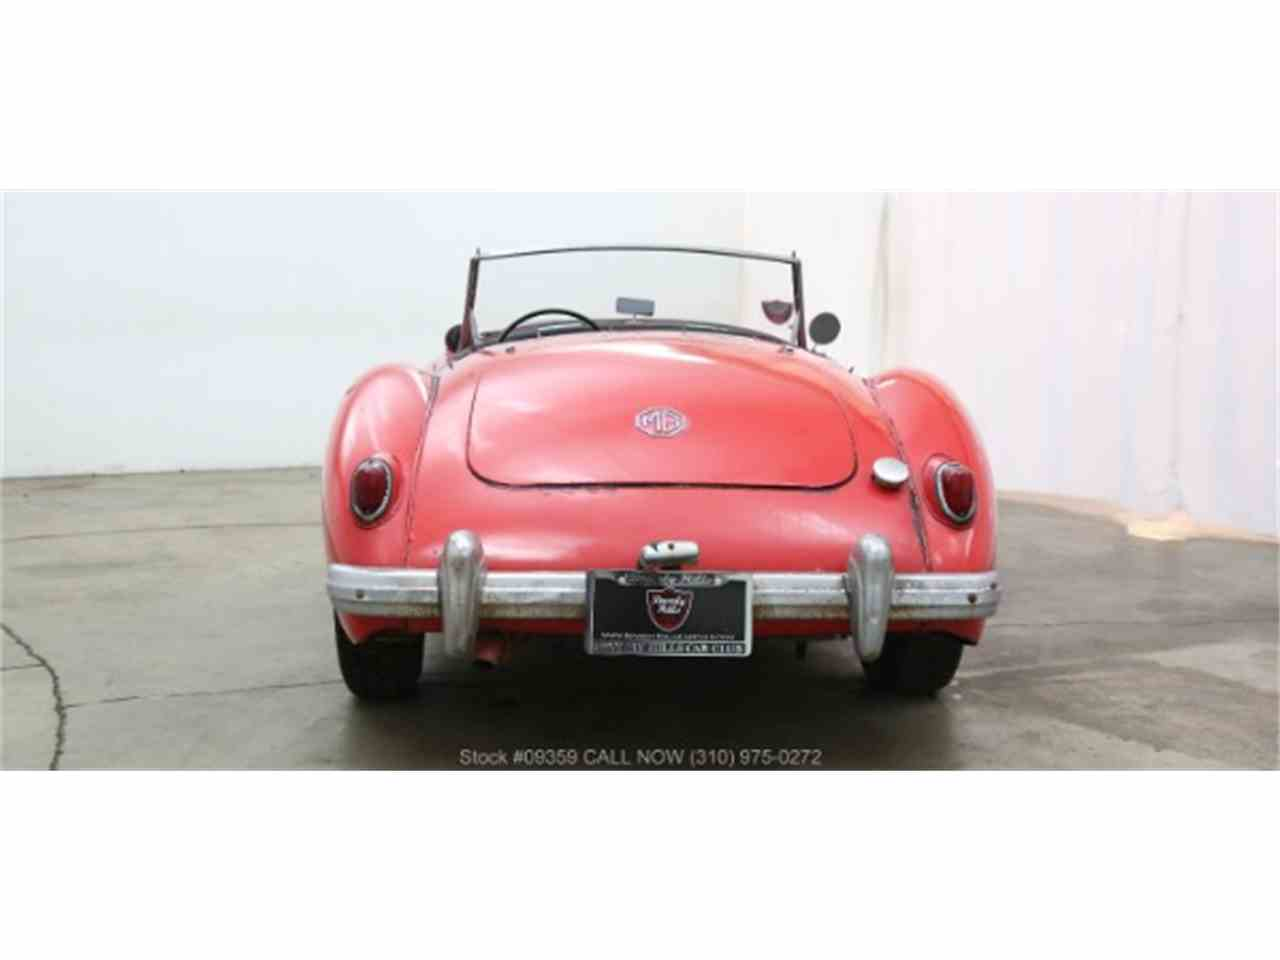 Large Picture of Classic '58 MG Antique located in California - $12,750.00 - MZ7G